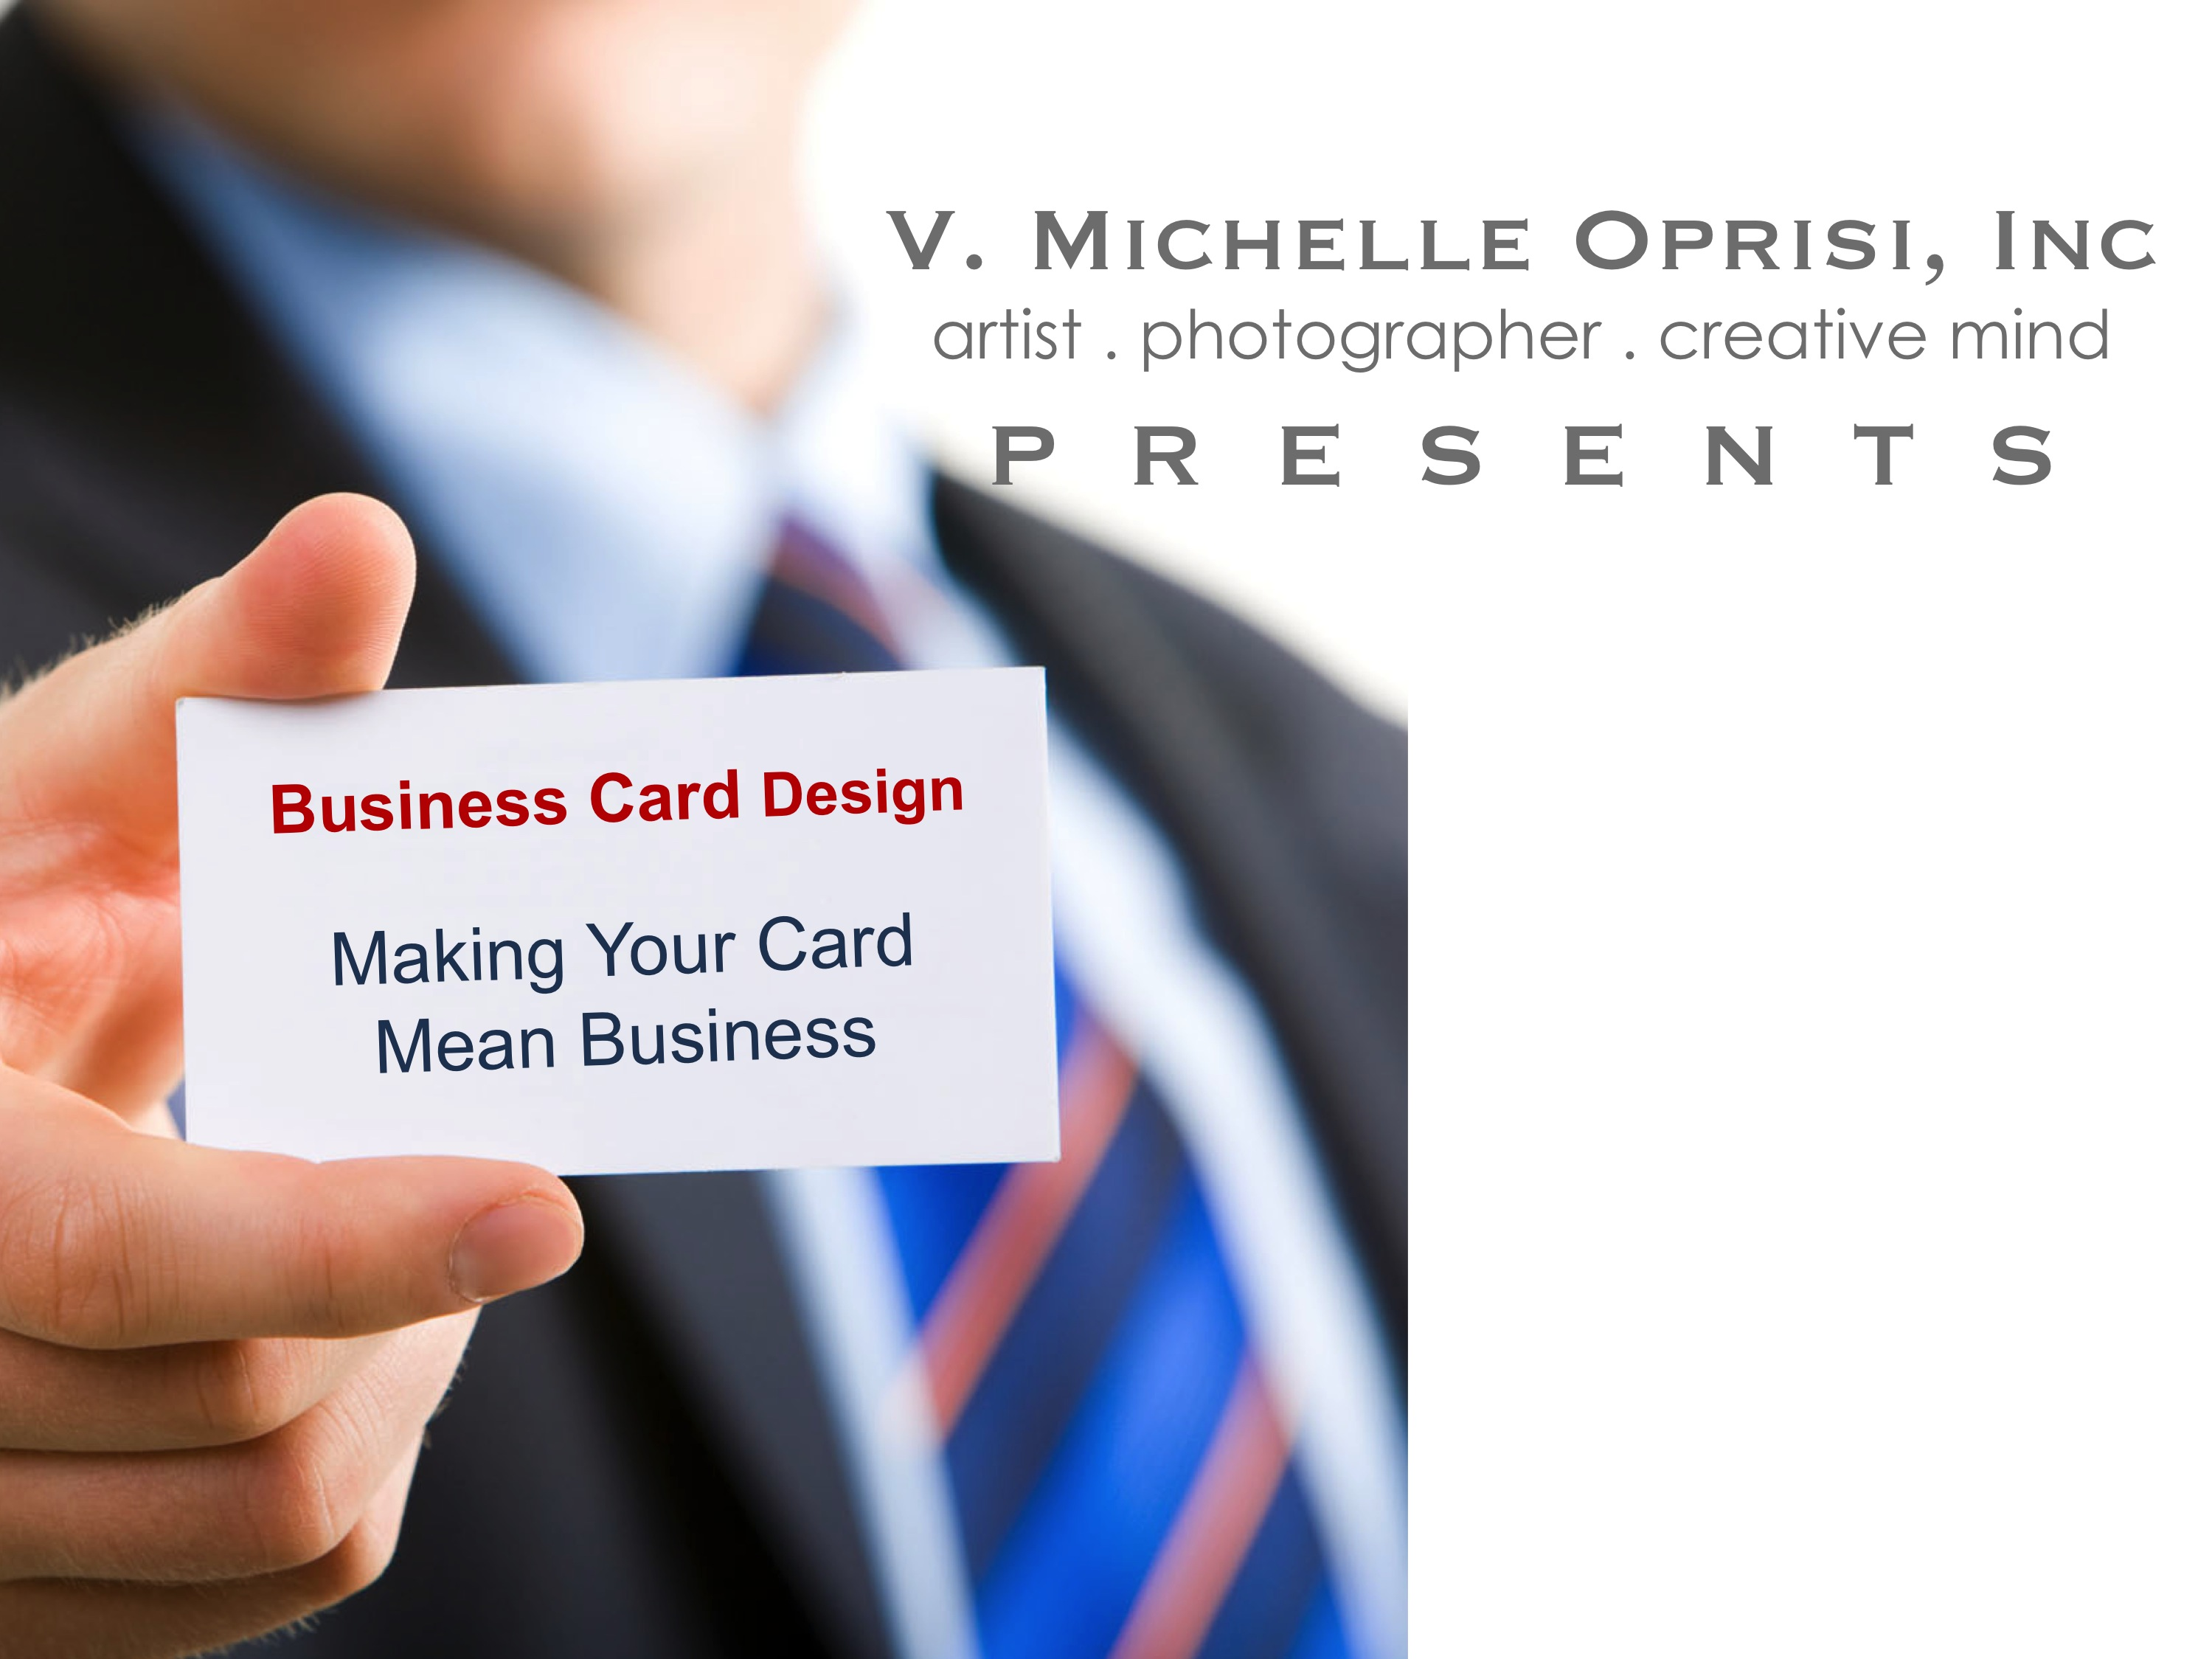 Business cards archives v michelle oprisi inc making your business cards mean business colourmoves